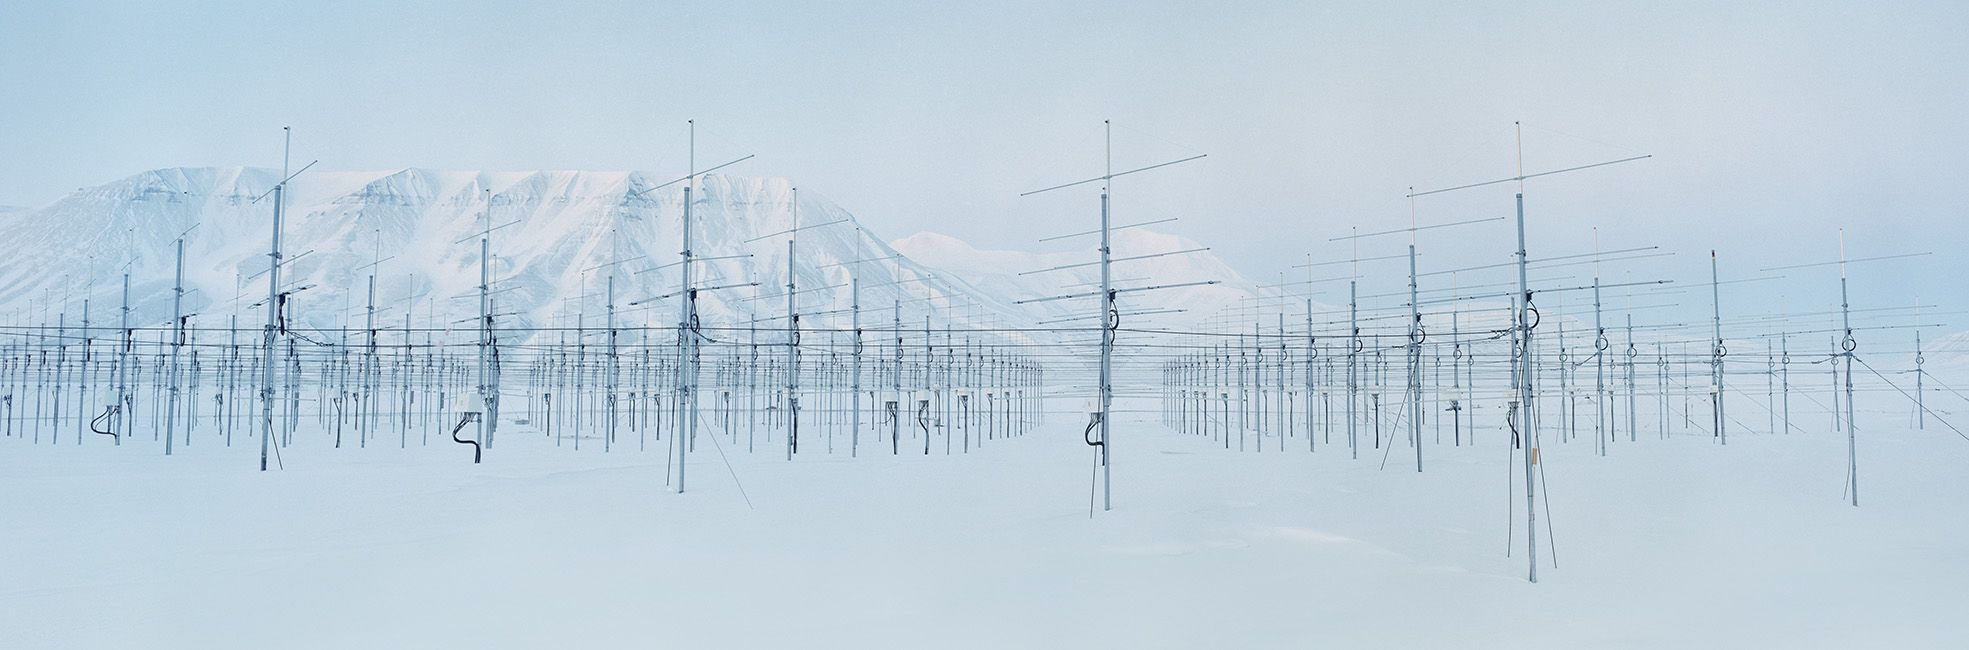 Antennaforest 2, Arctic Technology, Spitsbergen